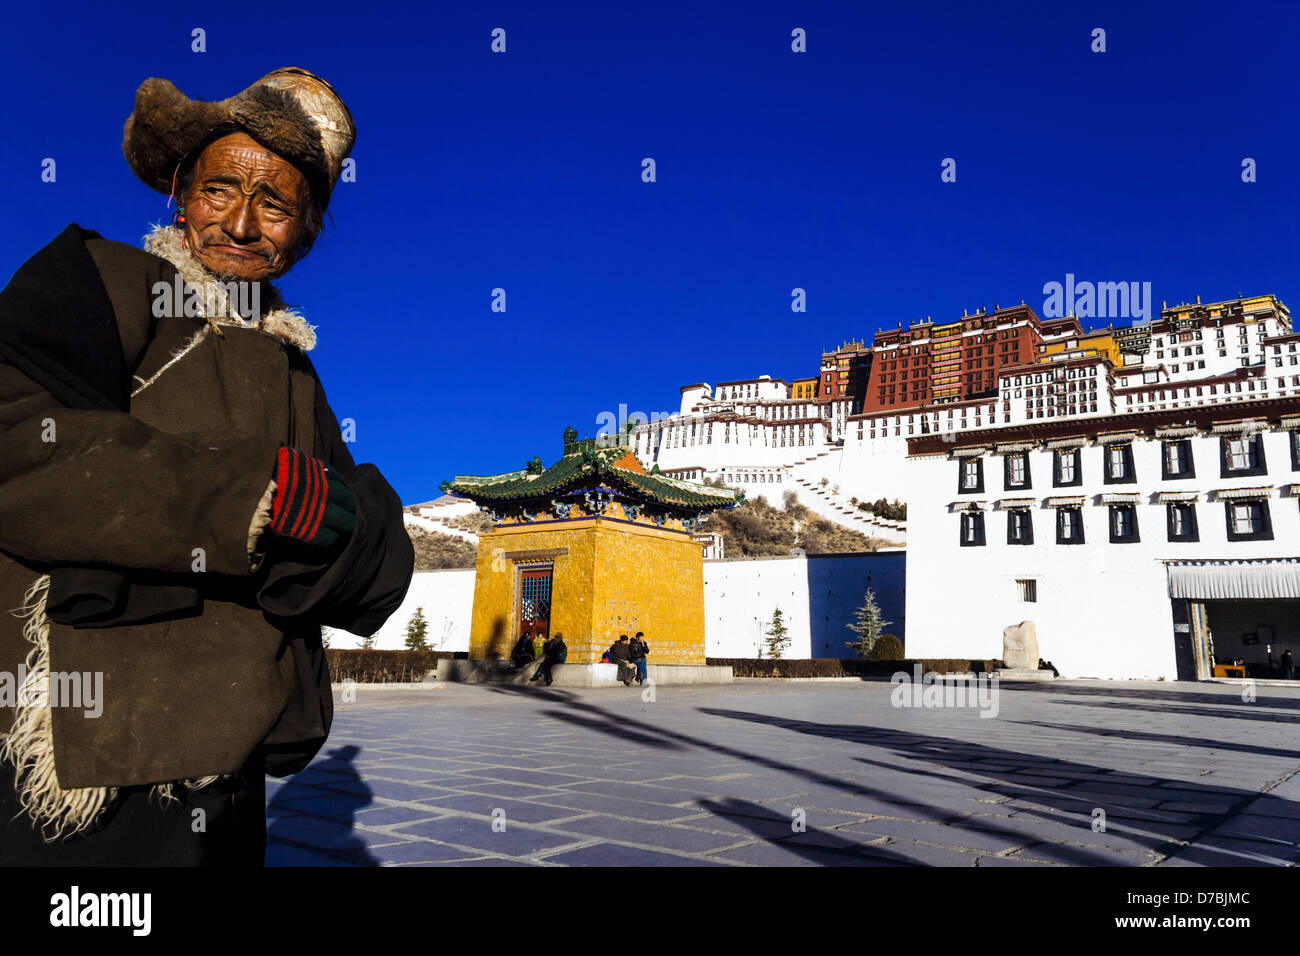 Old Tibetan man with fur hat standing in front of Potala palace in Lhasa, Tibet, China - Stock Image